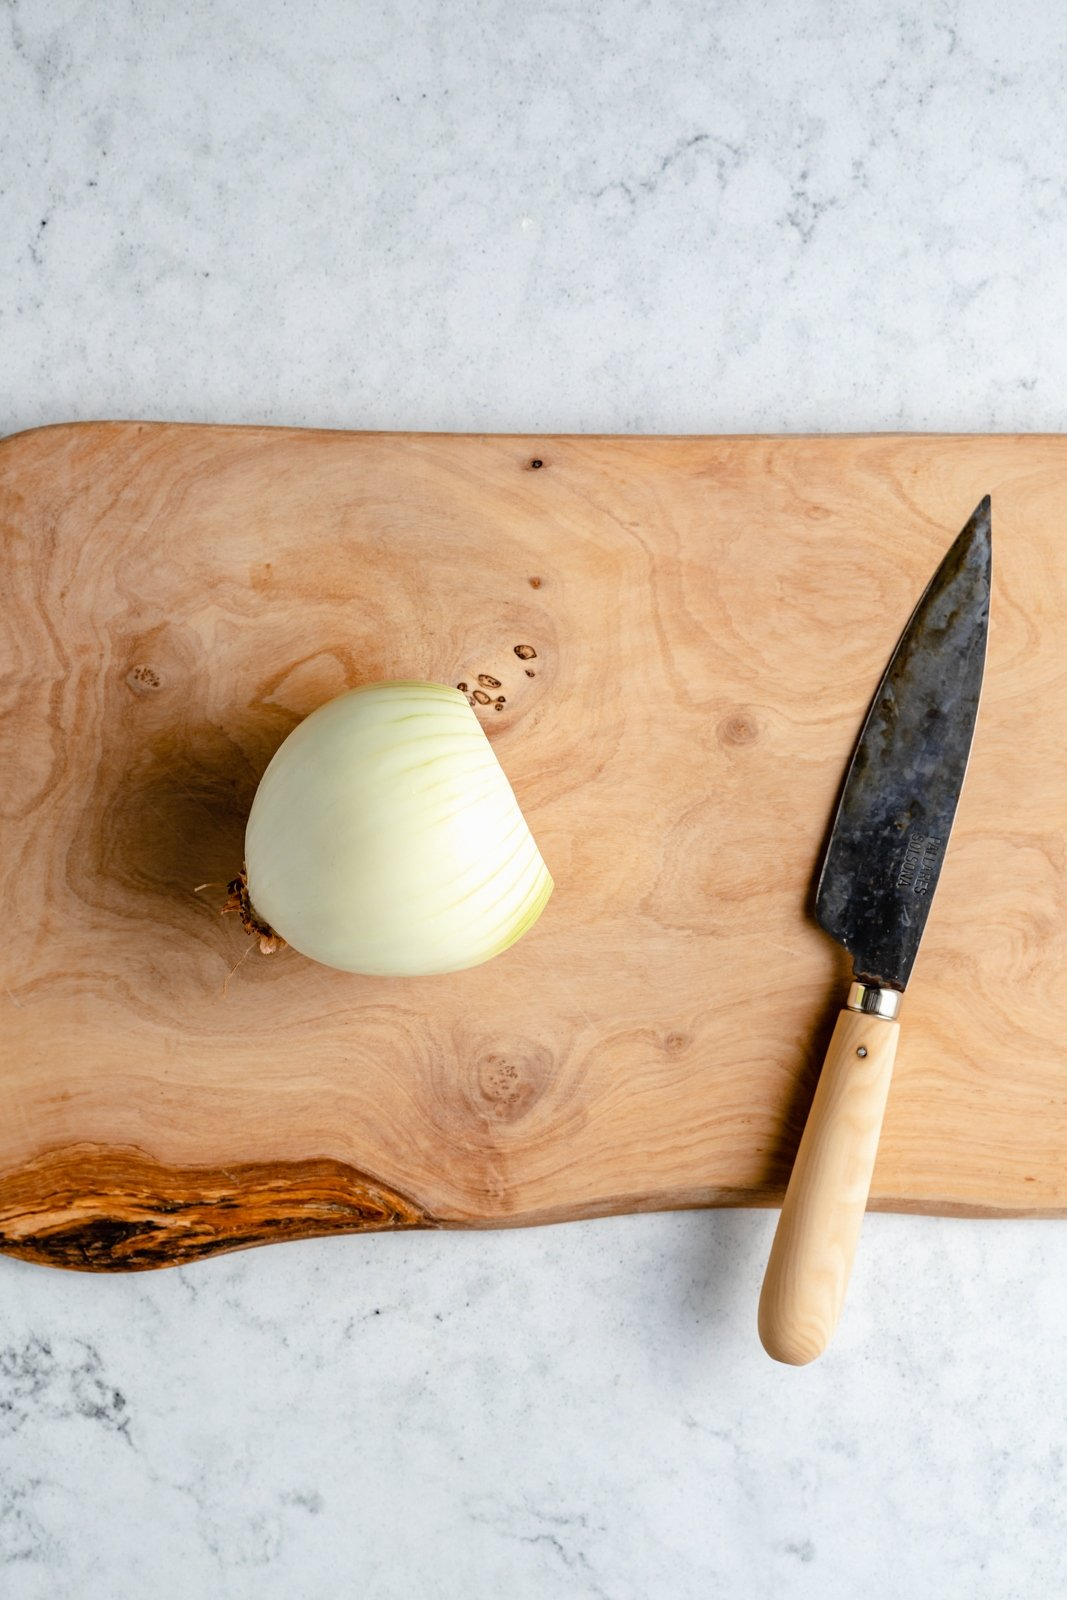 peeled onion on a cutting board with a knife